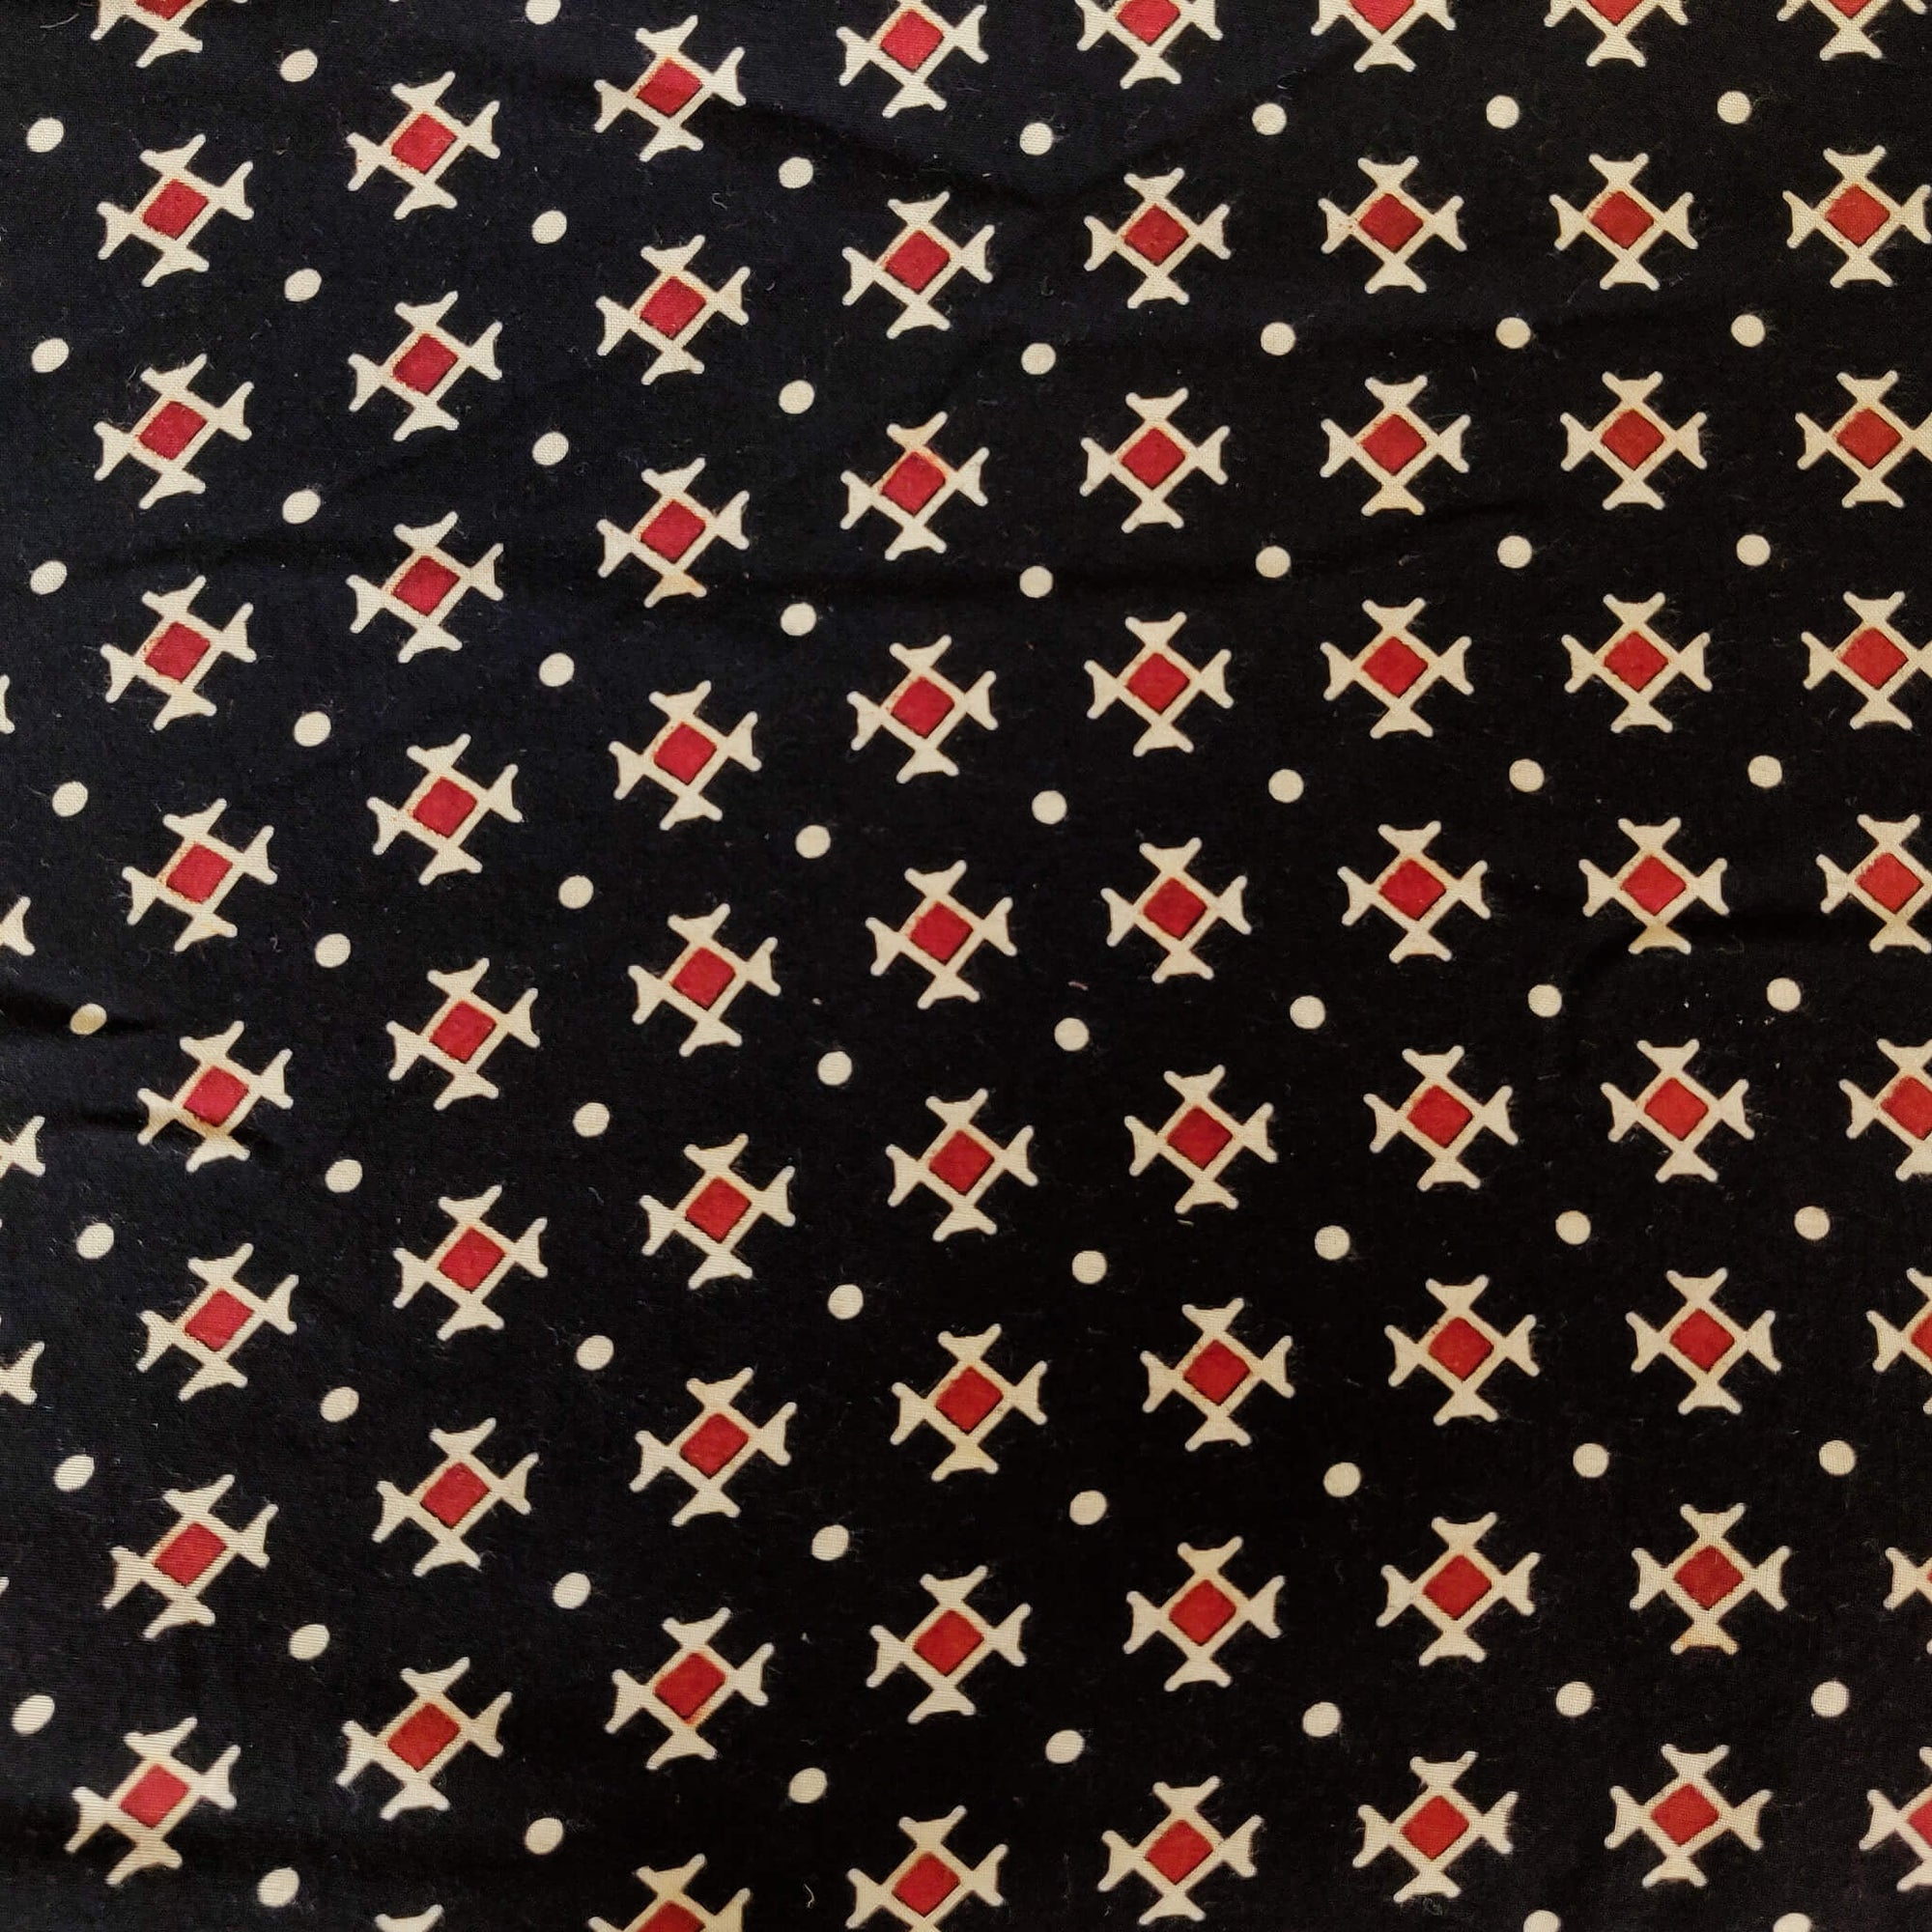 Cotton Rayon Black With Tiny Black Motifs Screenprint Fabric